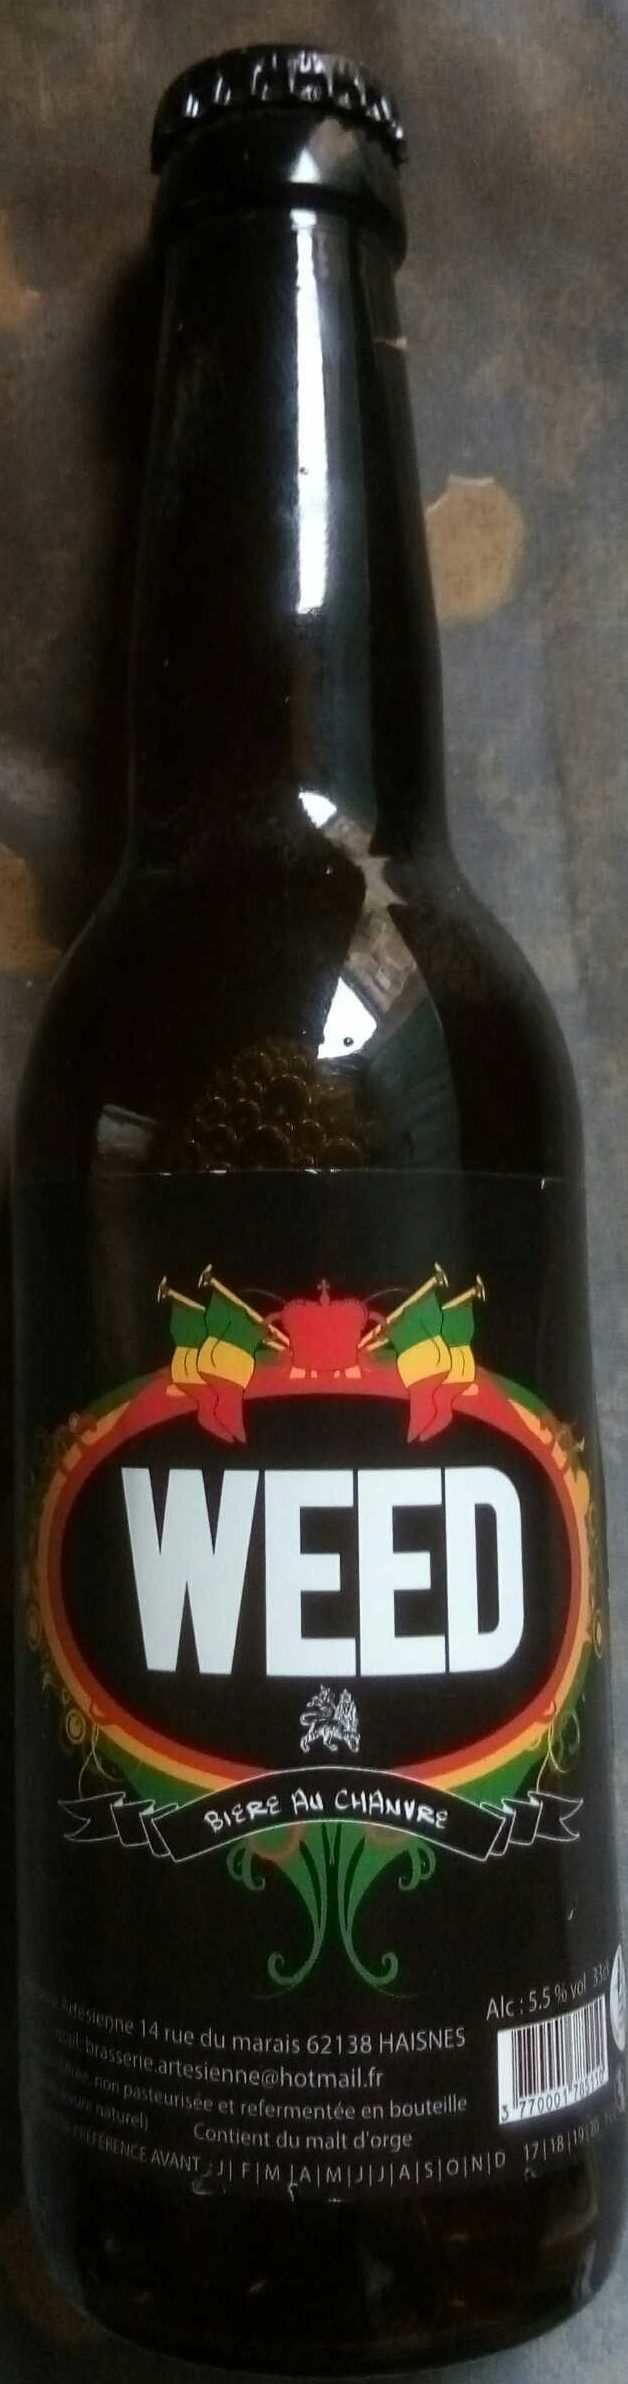 Weed - Product